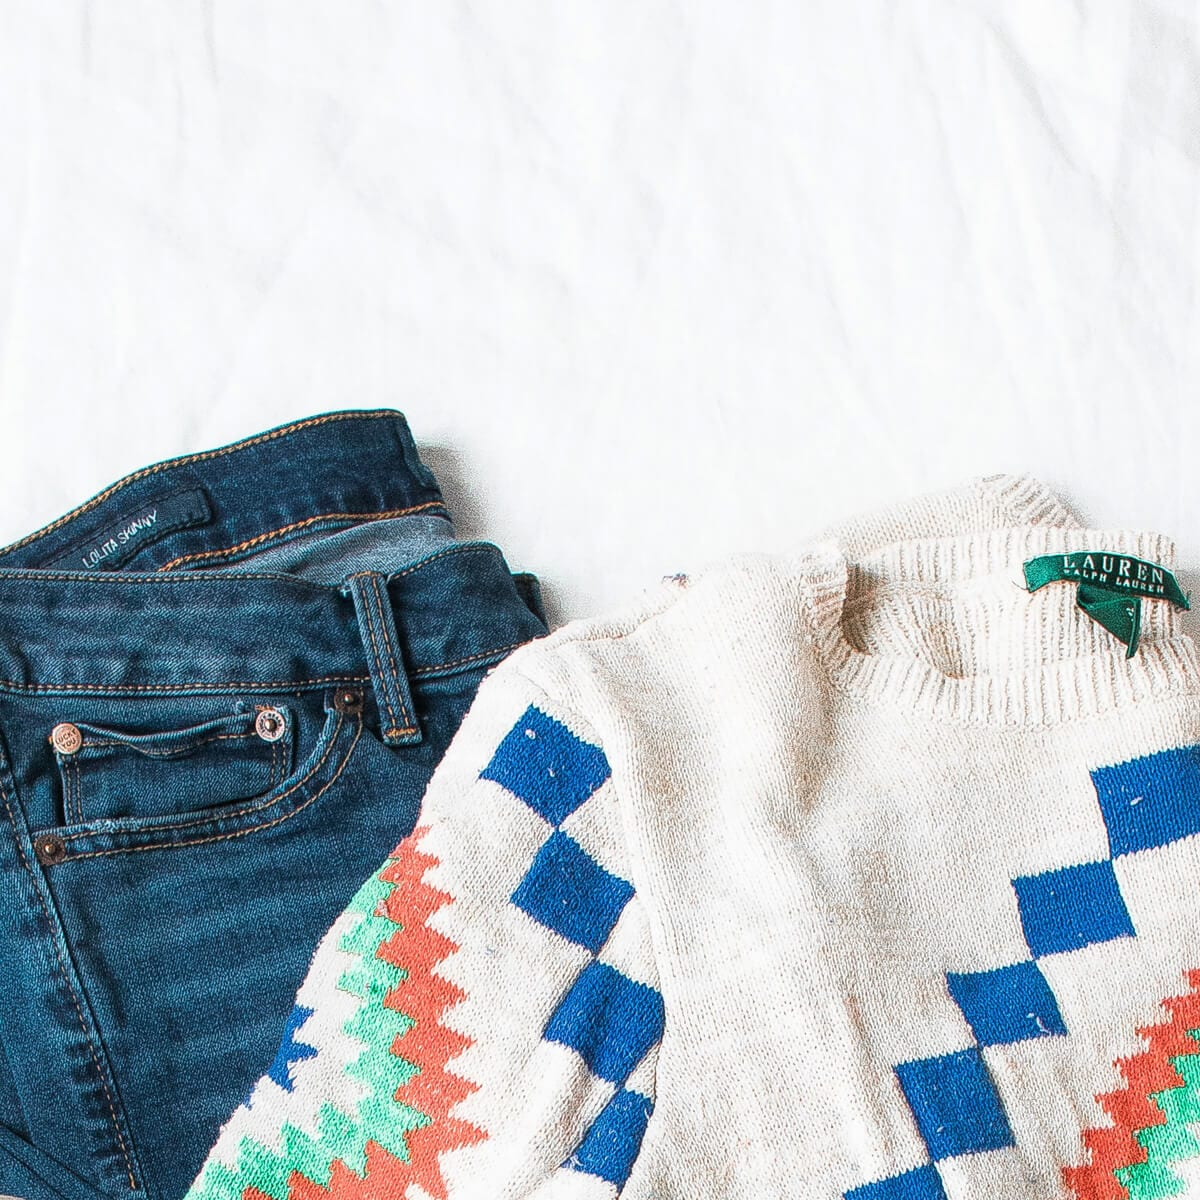 blue jeans and white ralph lauren sweater